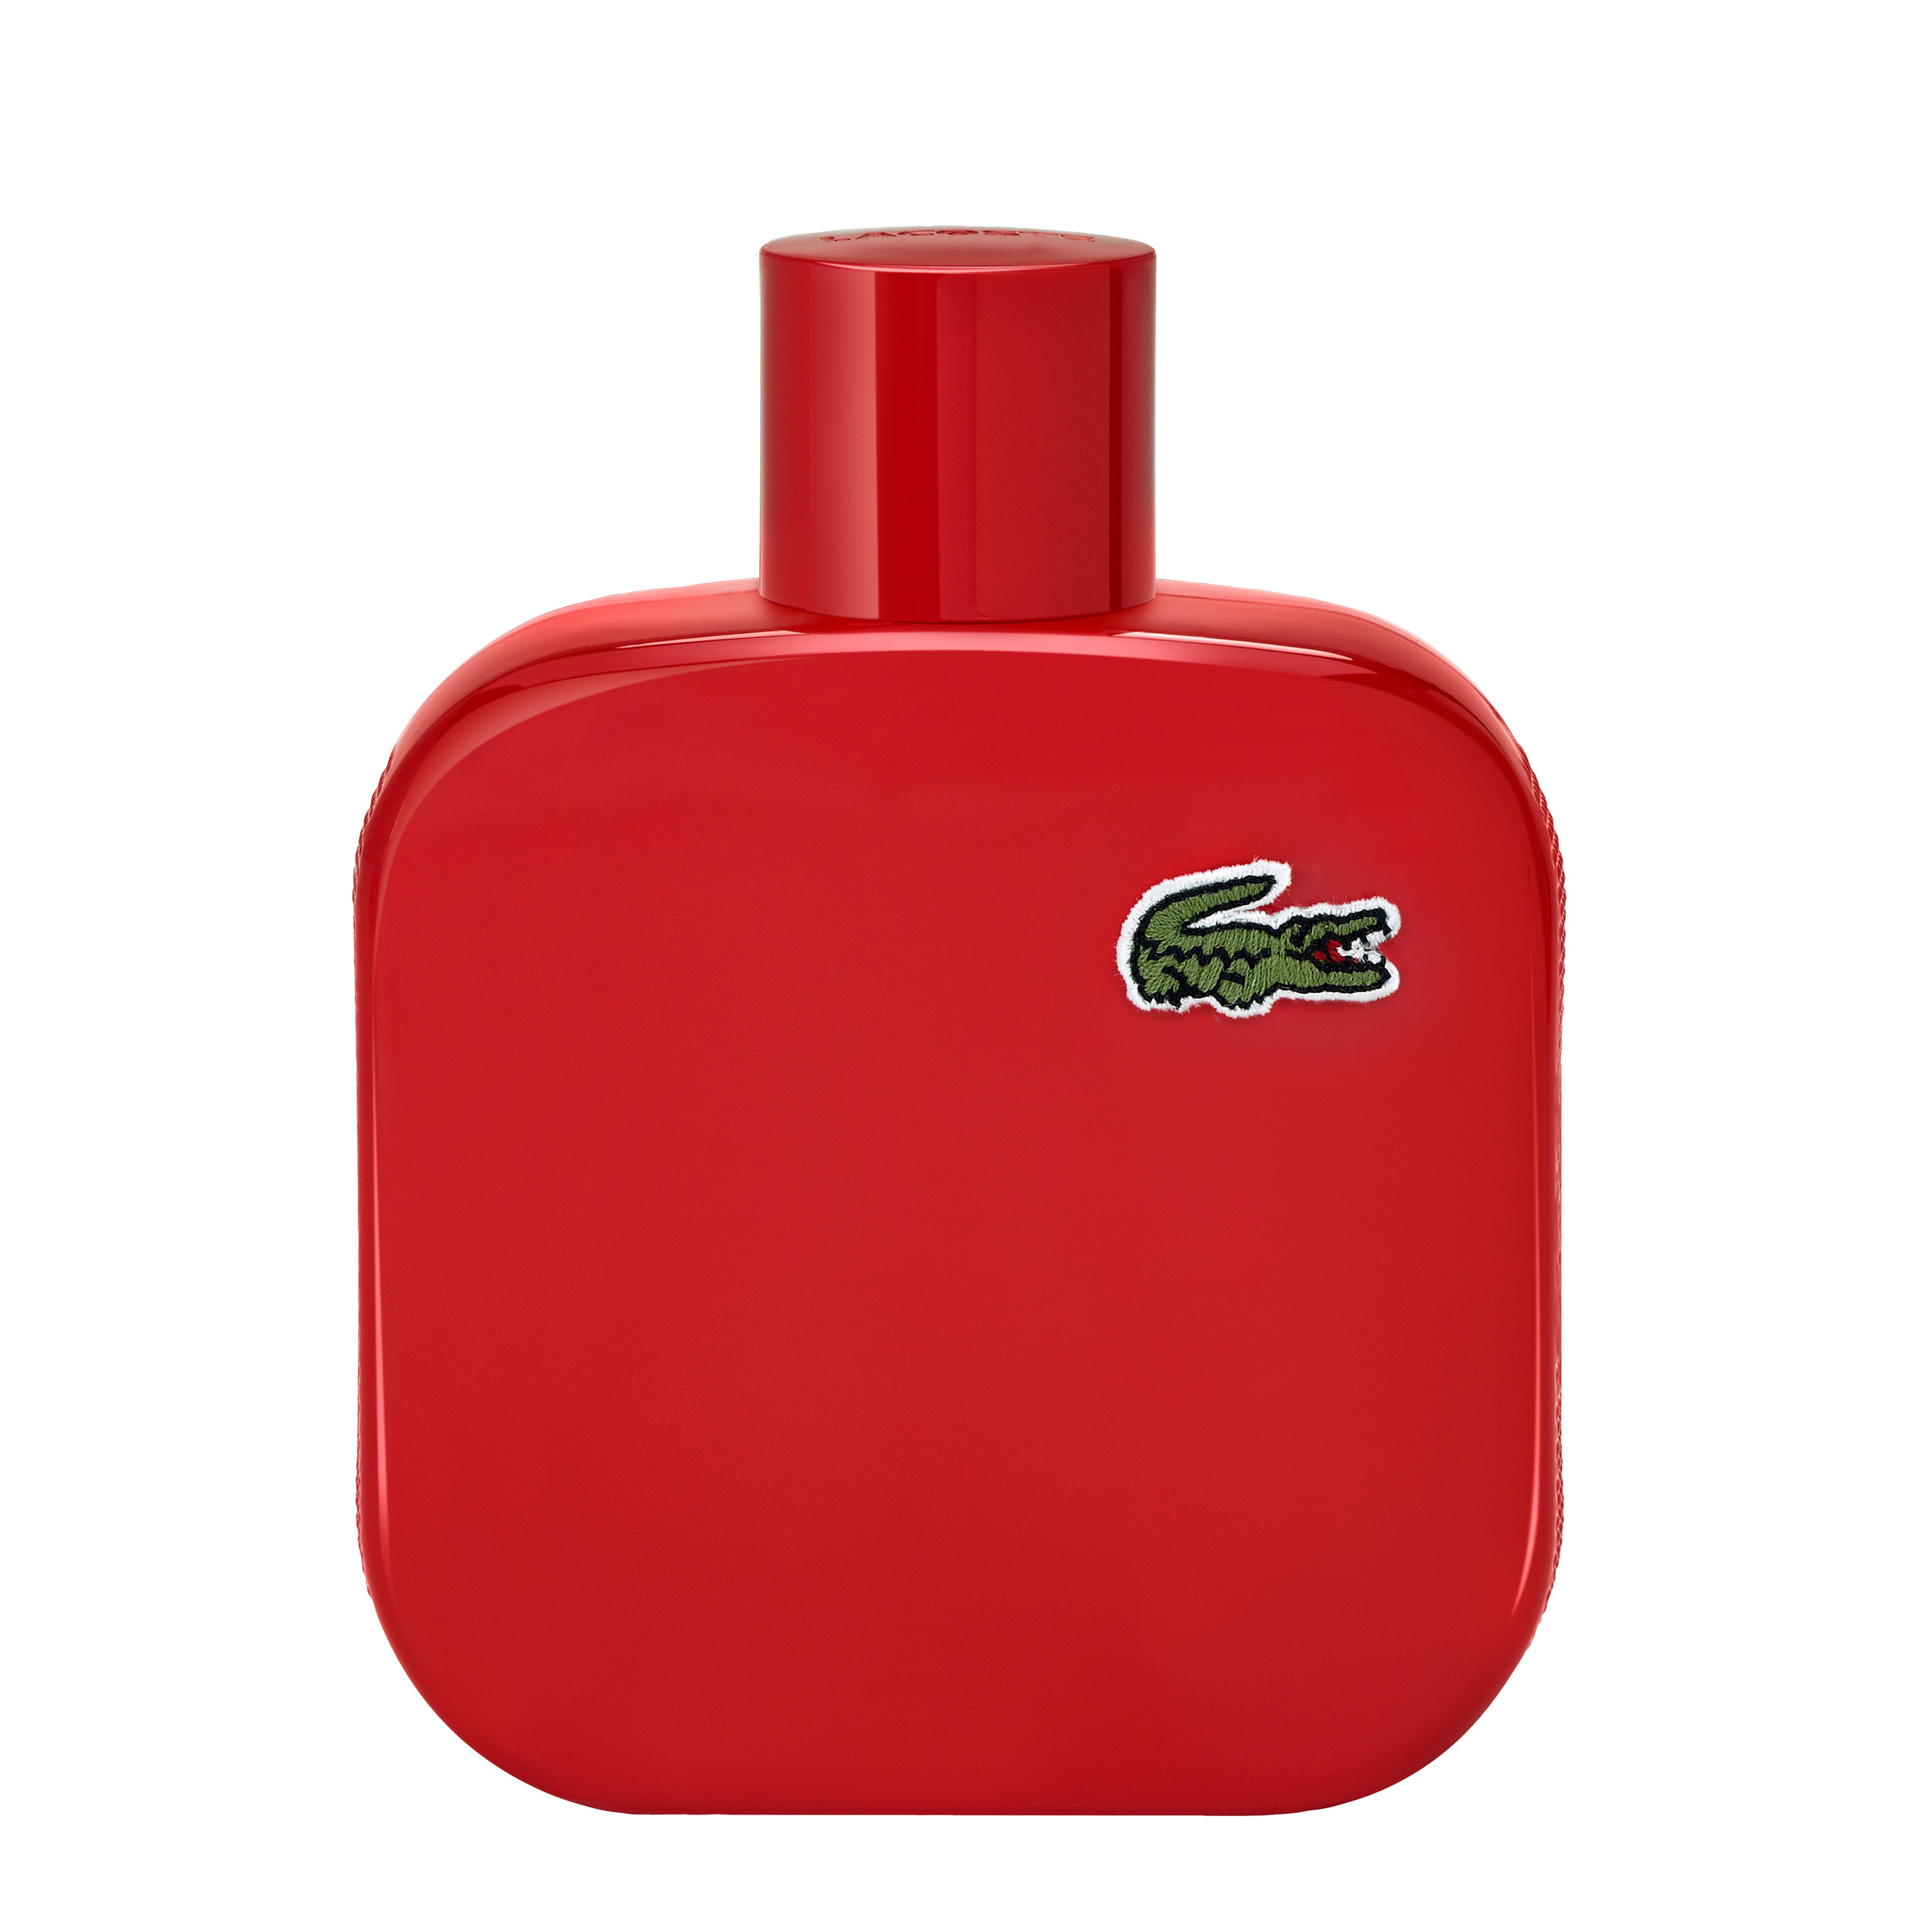 LACOSTE_L1212_rouge_100ml_bottle_jpg_dl.jpg